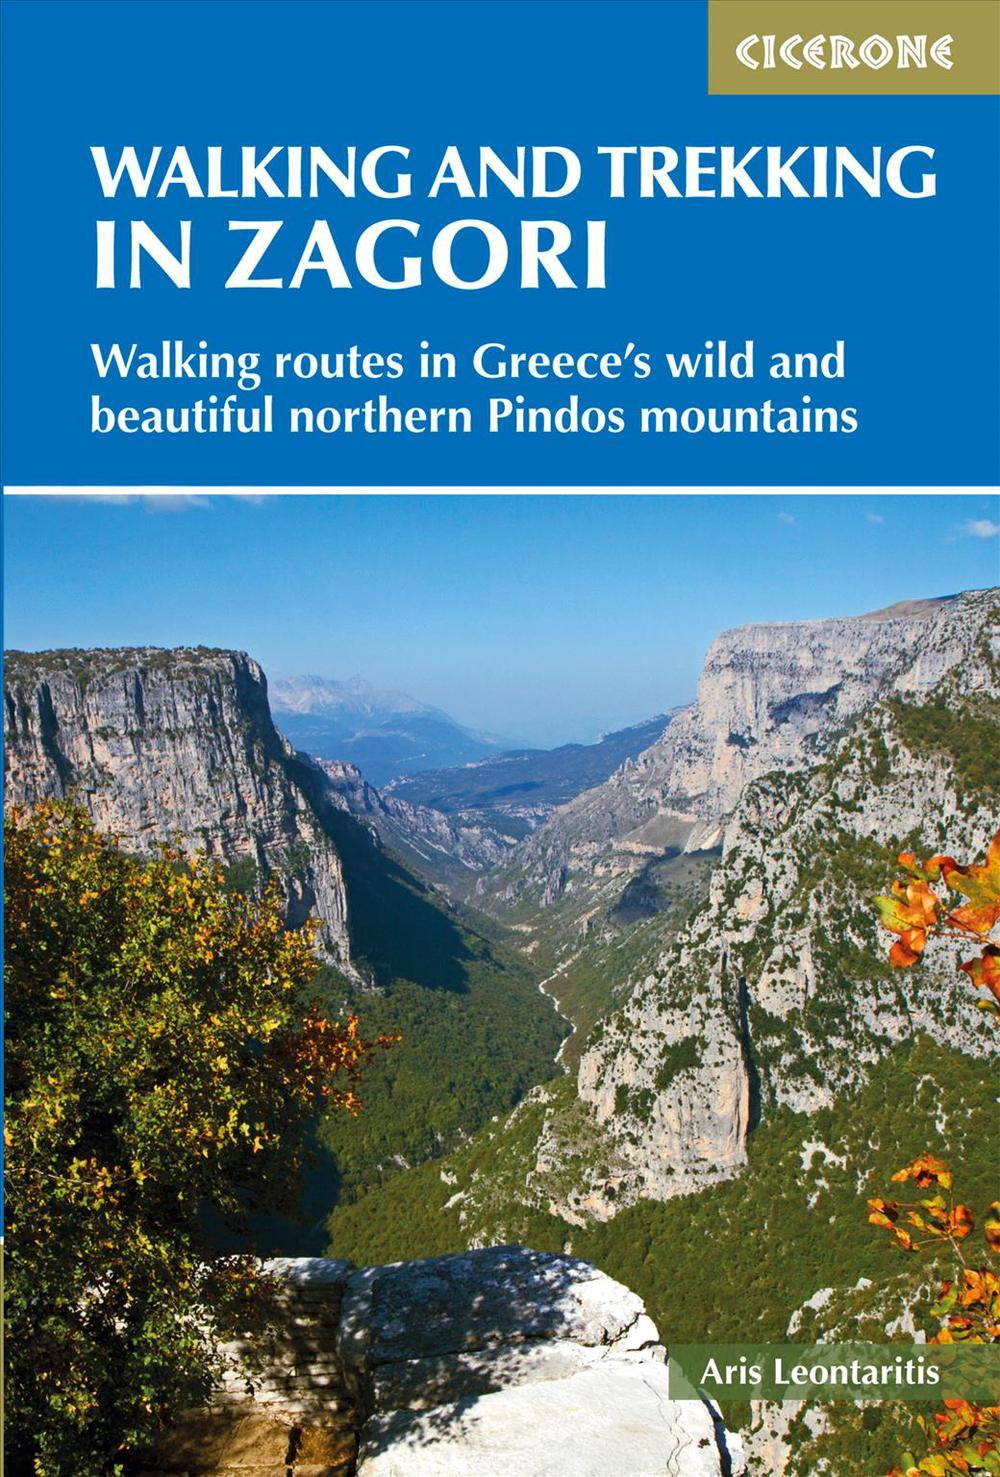 Walking and Trekking in Zagori: Walking routes in Greece's wild and beautiful northern Pindos mountains